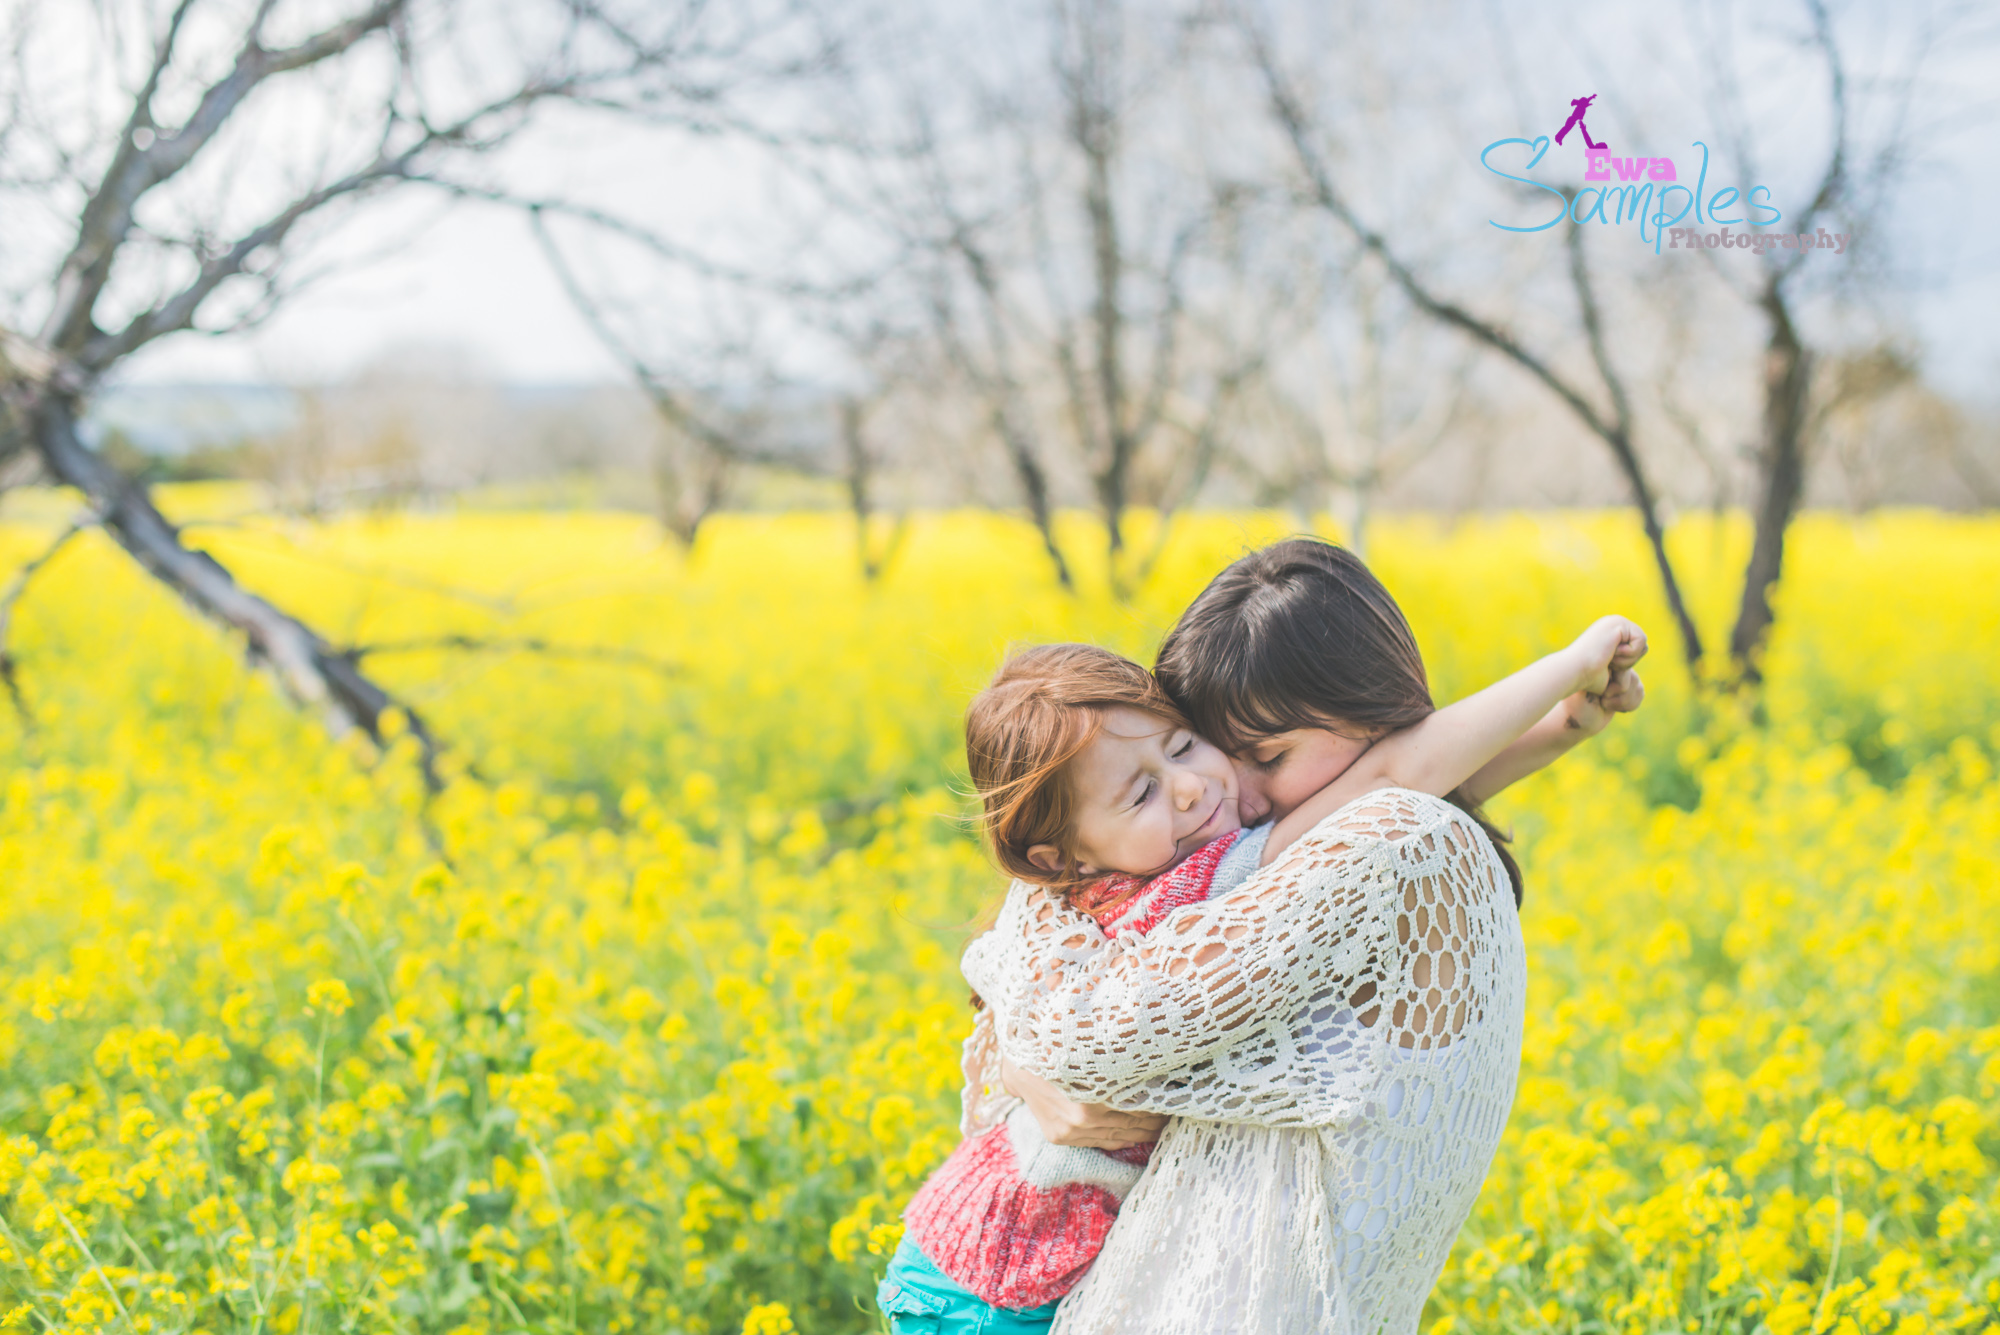 family_photography_session_in_orchards_ewa_samples_photography-1